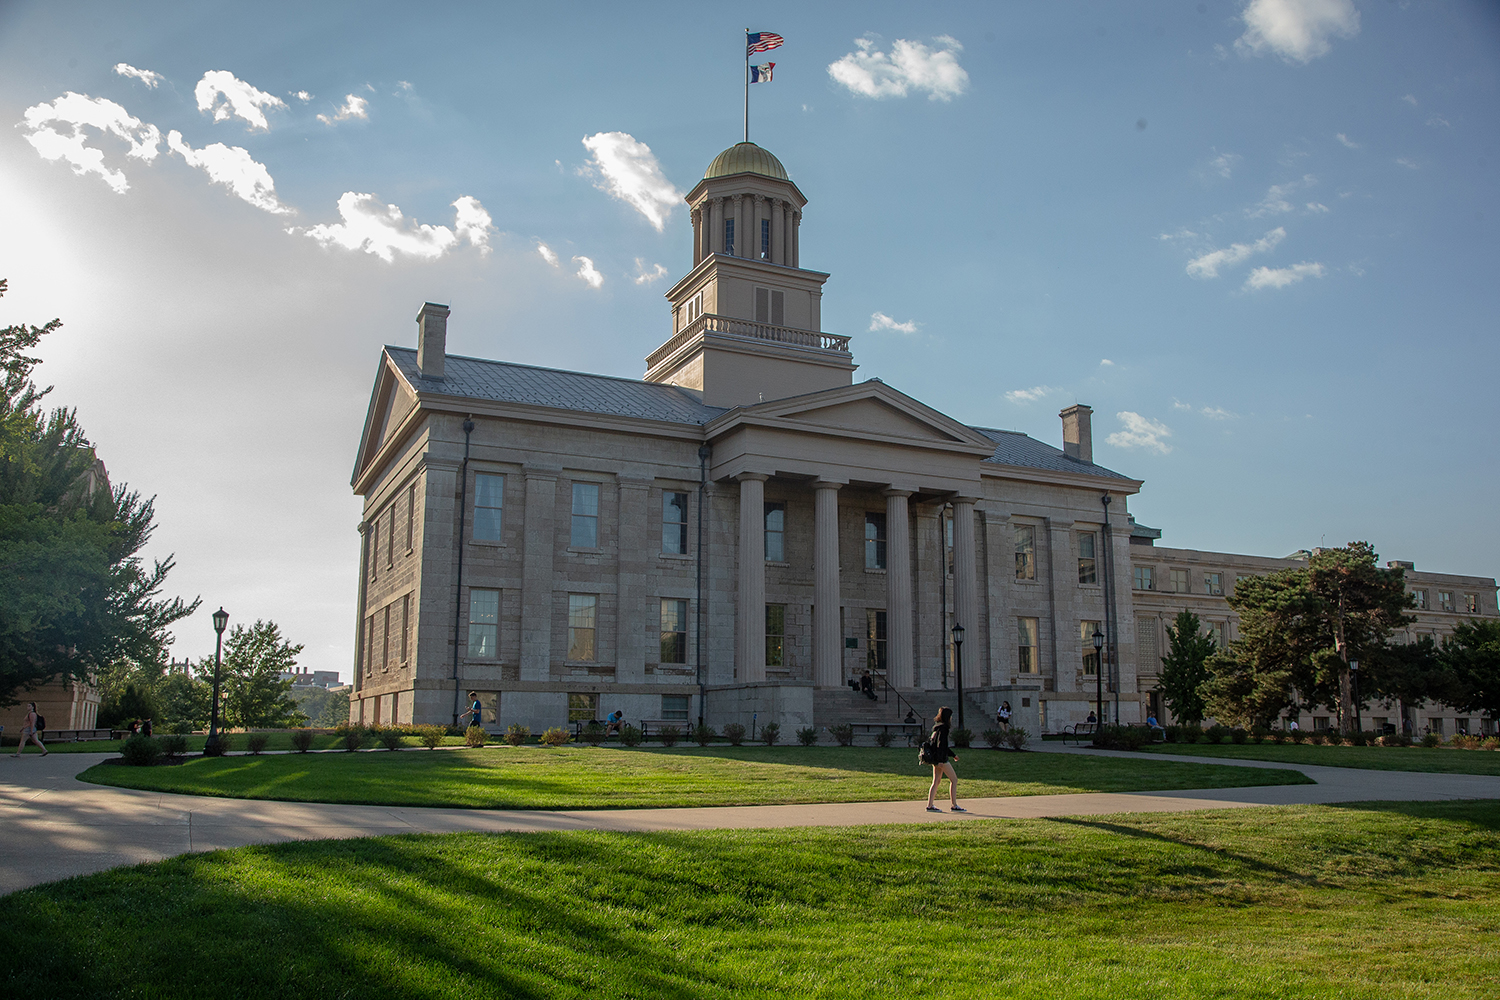 The Old Capitol building is seen in 2018.